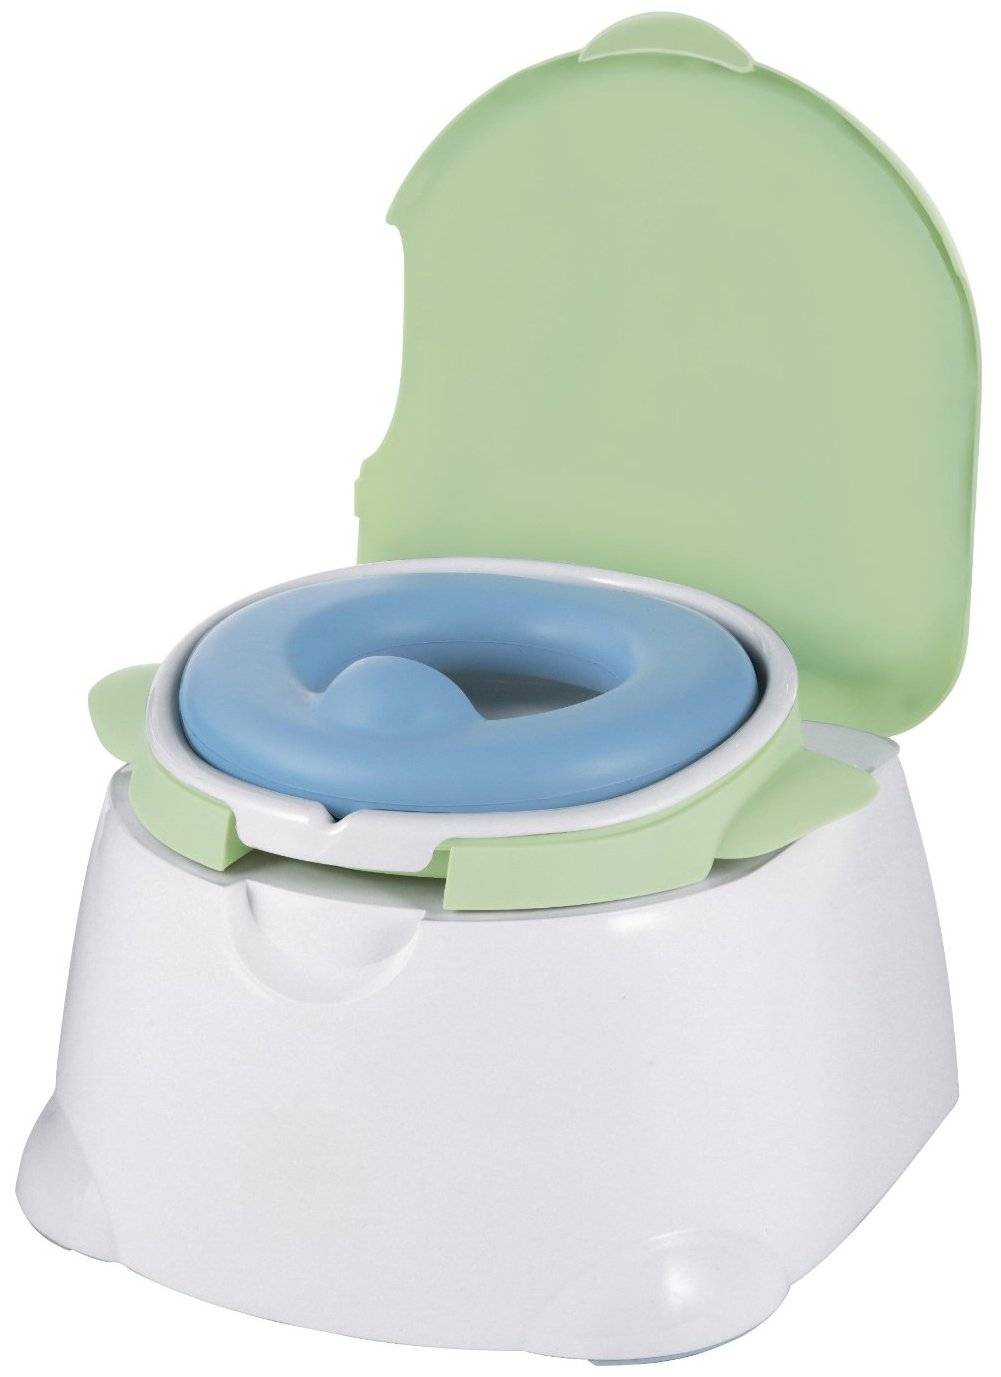 3 in 1 potty chair liberty 312 power selection tips a seat for everyone